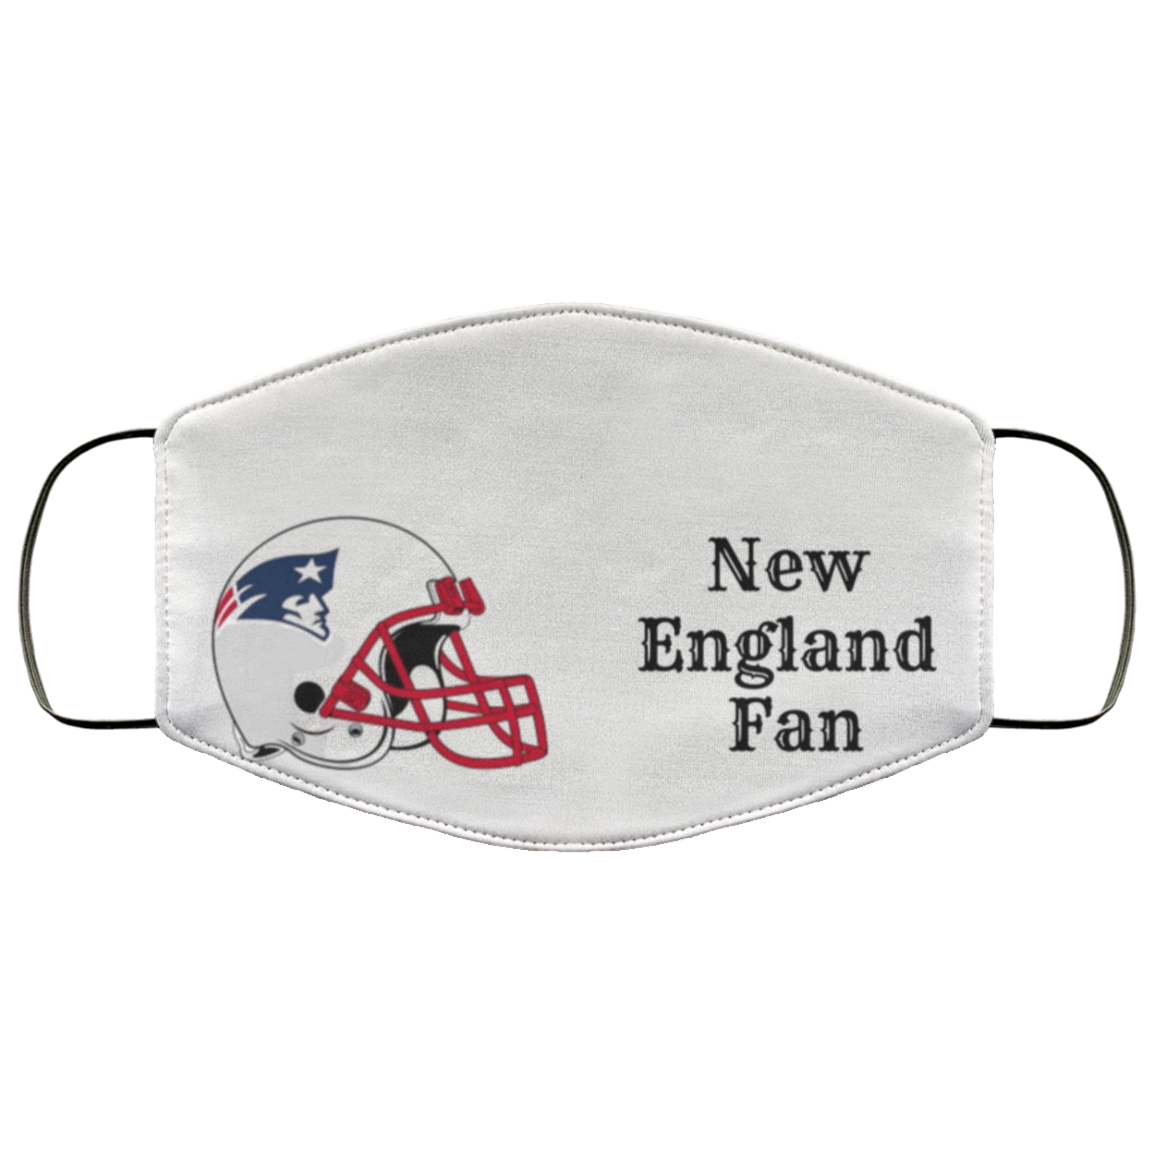 New England Fan Face Mask - OMG I Really Want That